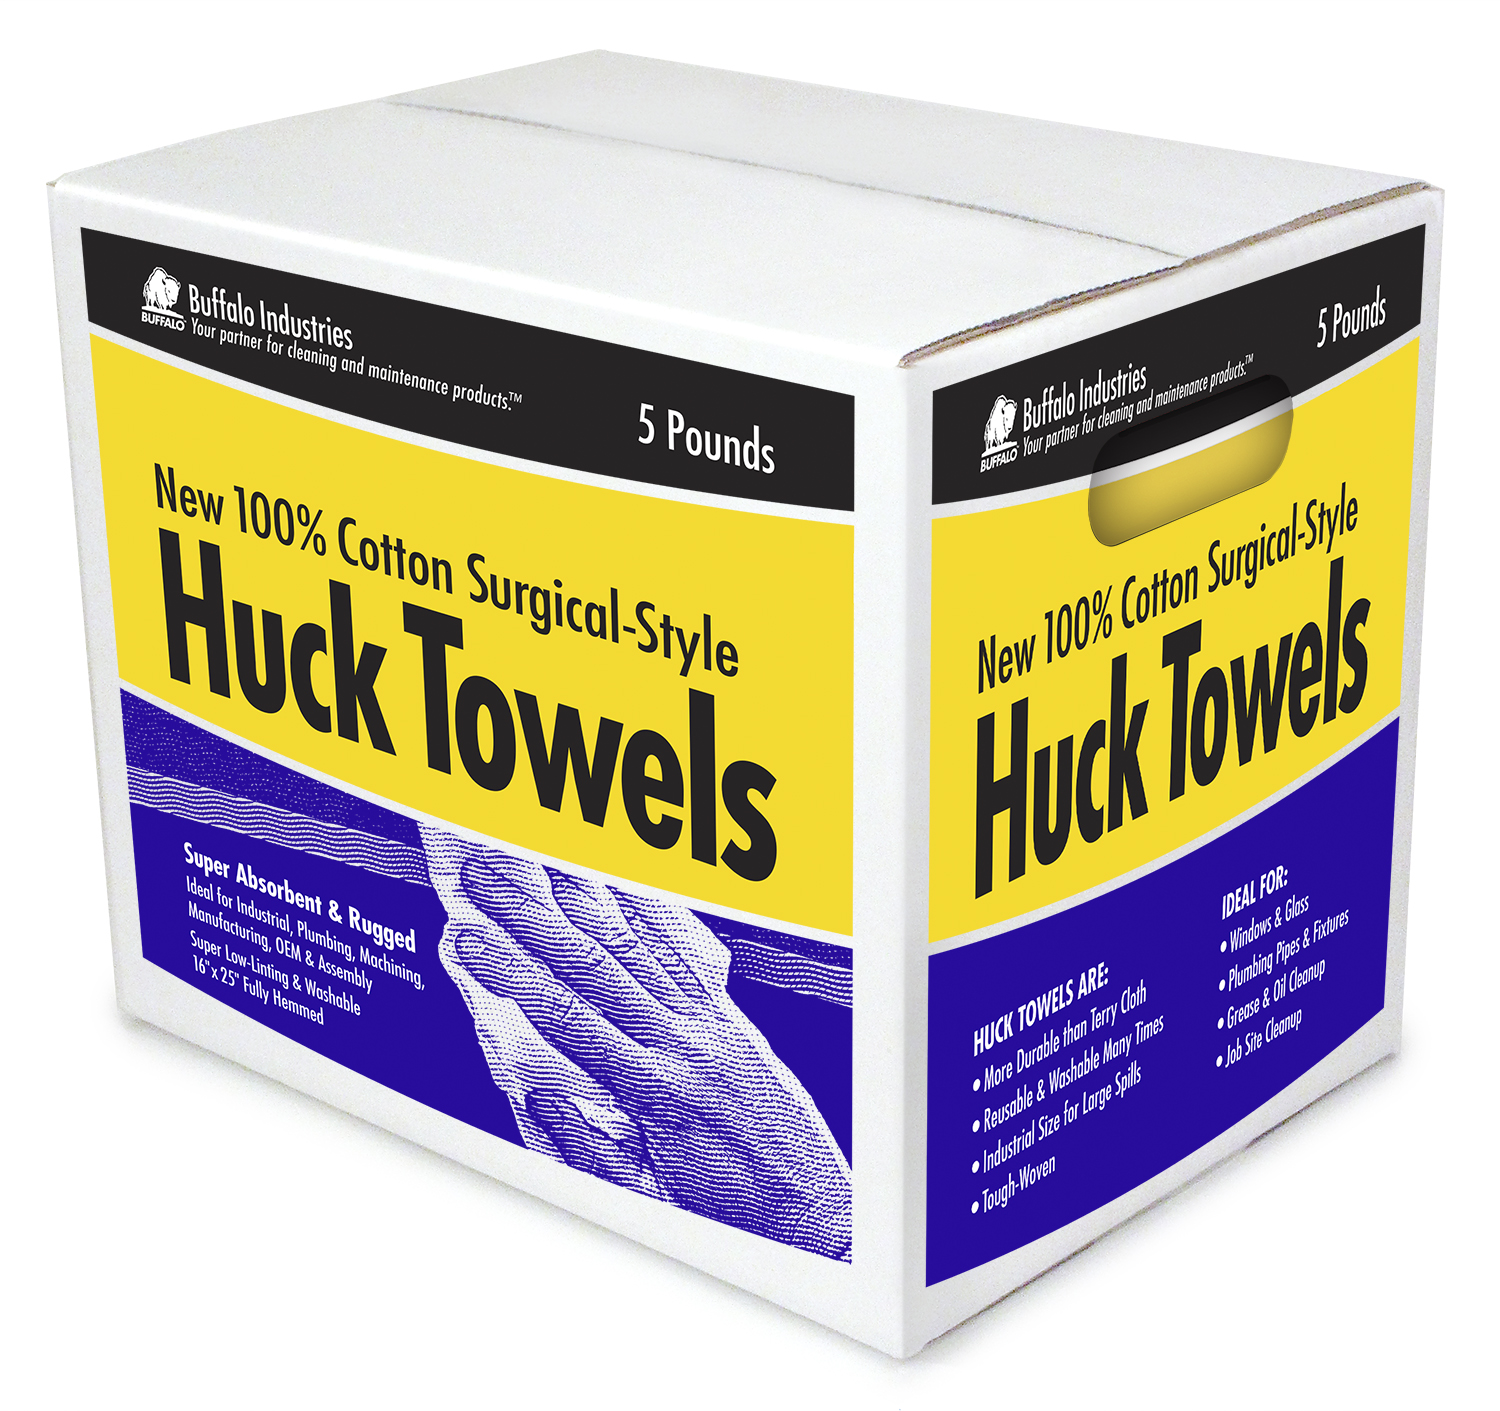 BF-12035 Huck Towels 5 lb. Box